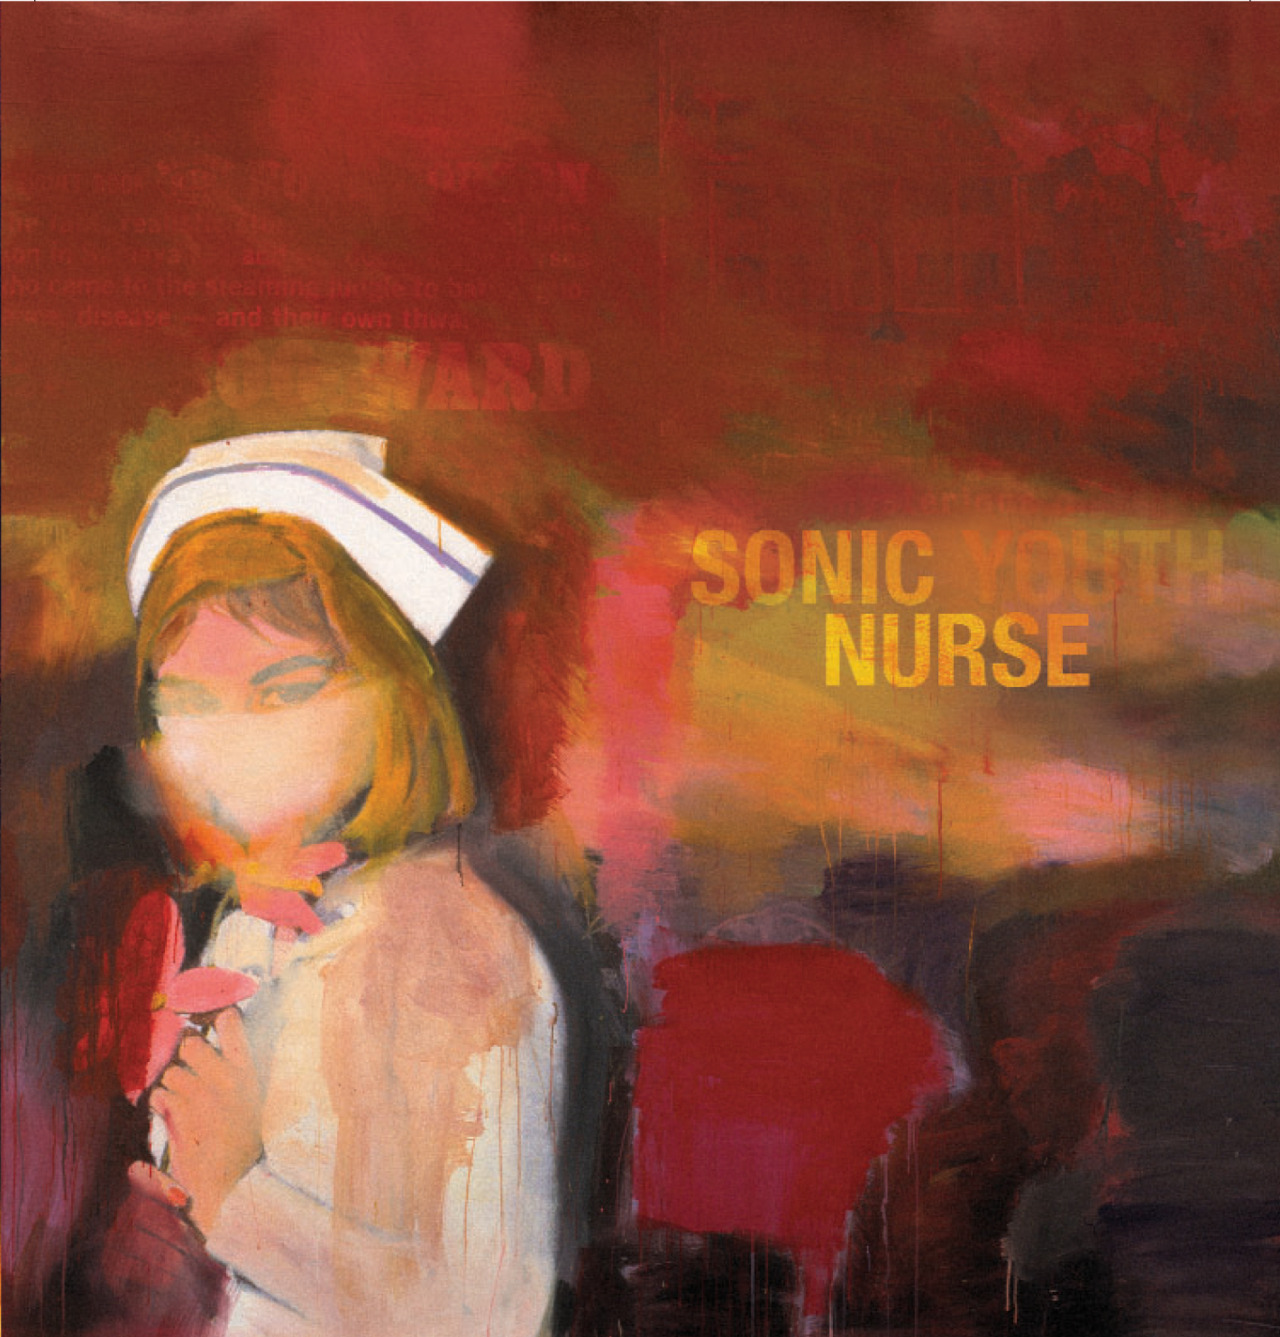 sfmoma:  Did you know that this album cover for Sonic Youth's Sonic Nurse was created by renowned artist Richard Prince? Dan McKinley from our graphic design department went ahead and compiled an eclectic playlist featuring songs from albums with cover art by well-known artists. Check it out and have a listen here!